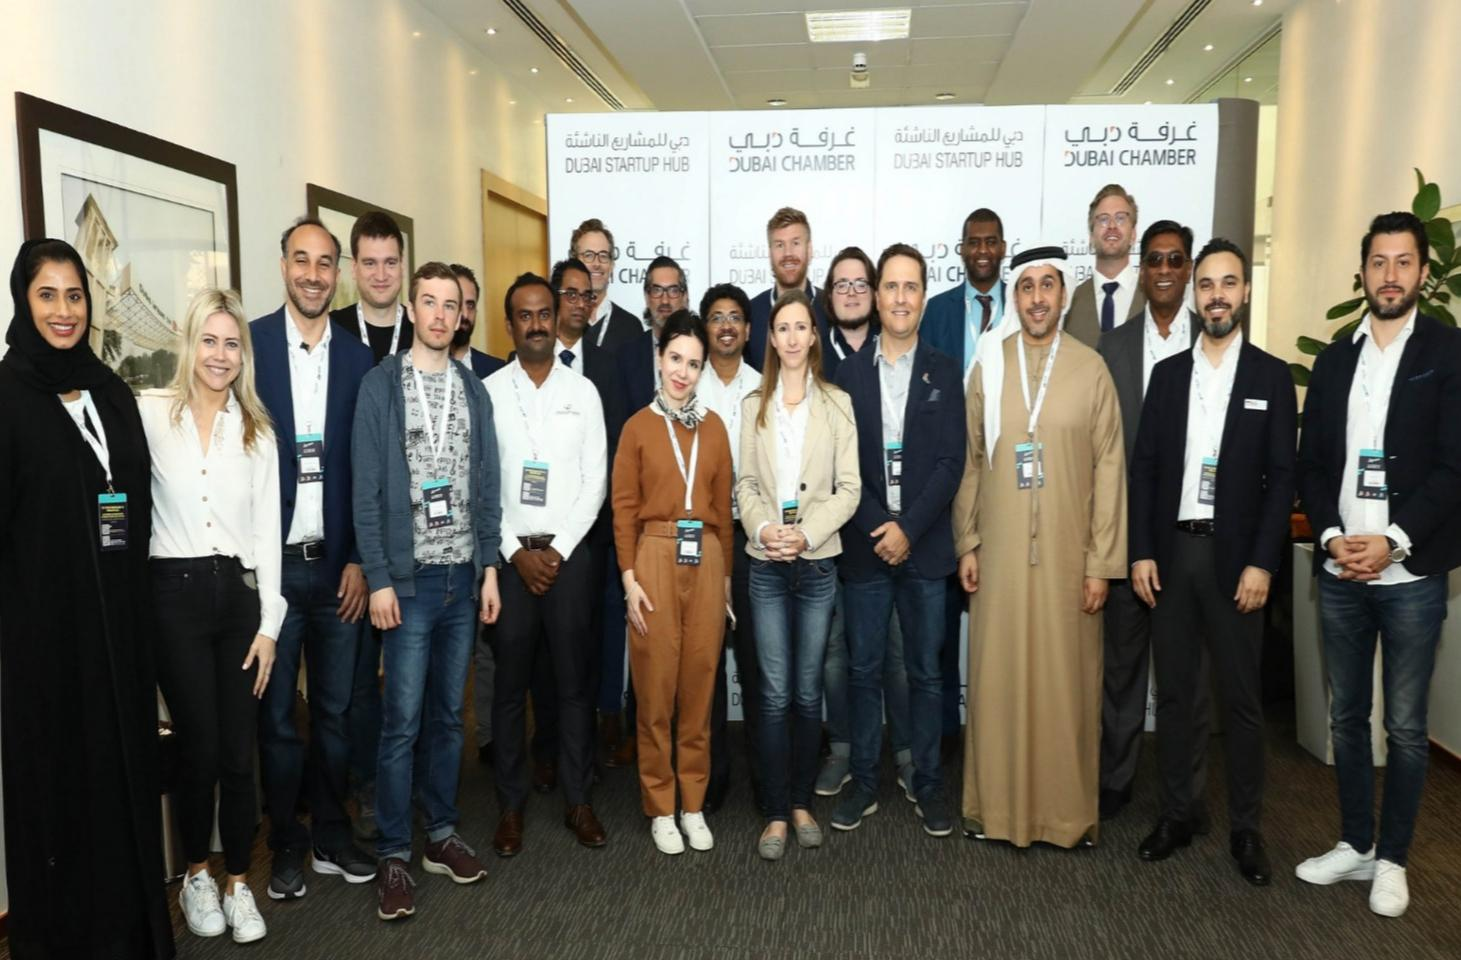 Mediclinic Middle East to Partner With NEARMOTION Through Dubai Chamber Market Access Program